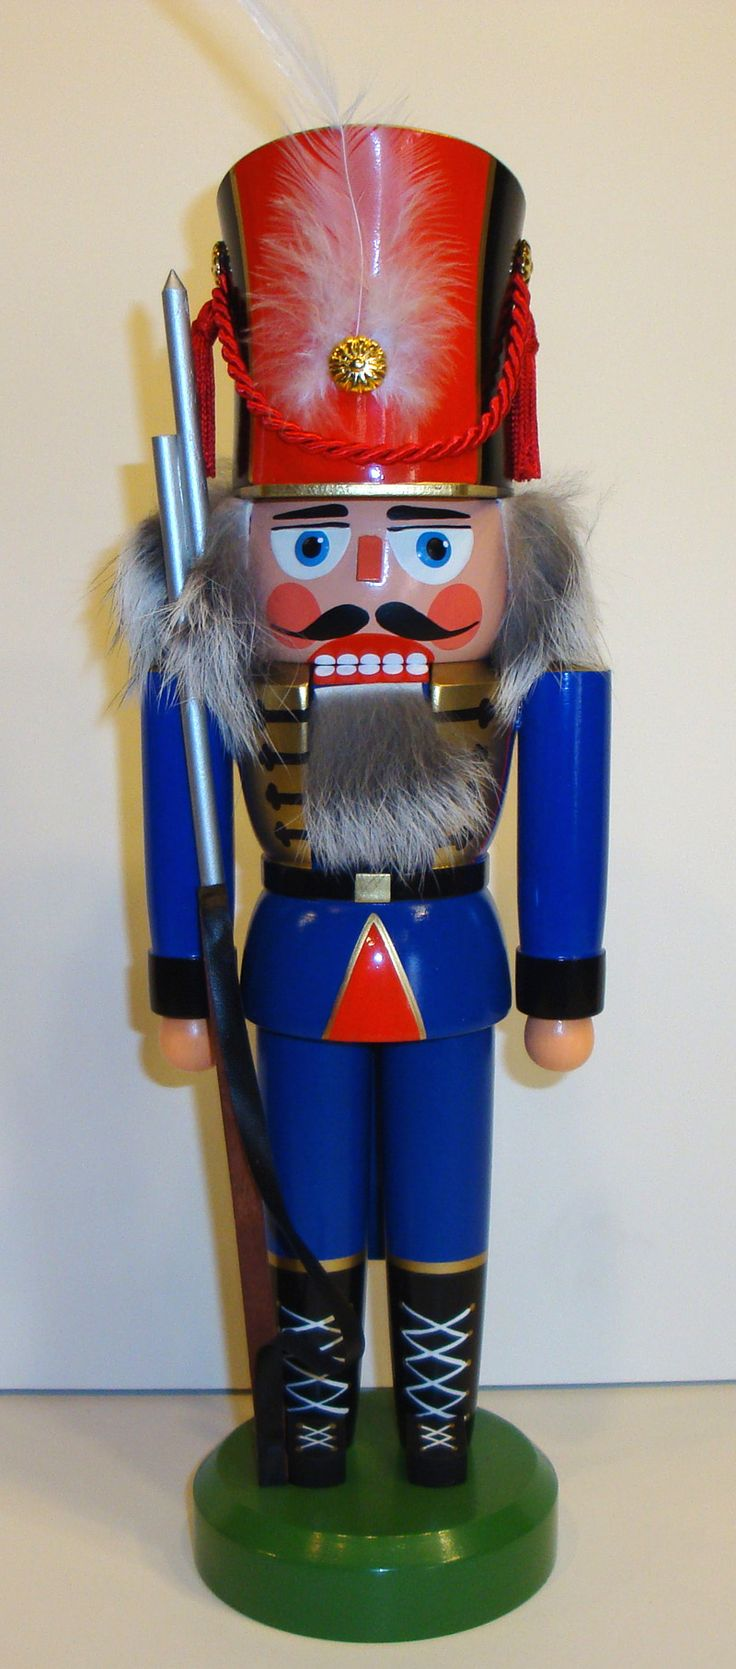 How to make a nutcracker christmas decoration - Diy Nutcracker Decorations See More Nutcrackers Christmas German Seiffen Glasser Gahlenz Nutcrackers Decorations